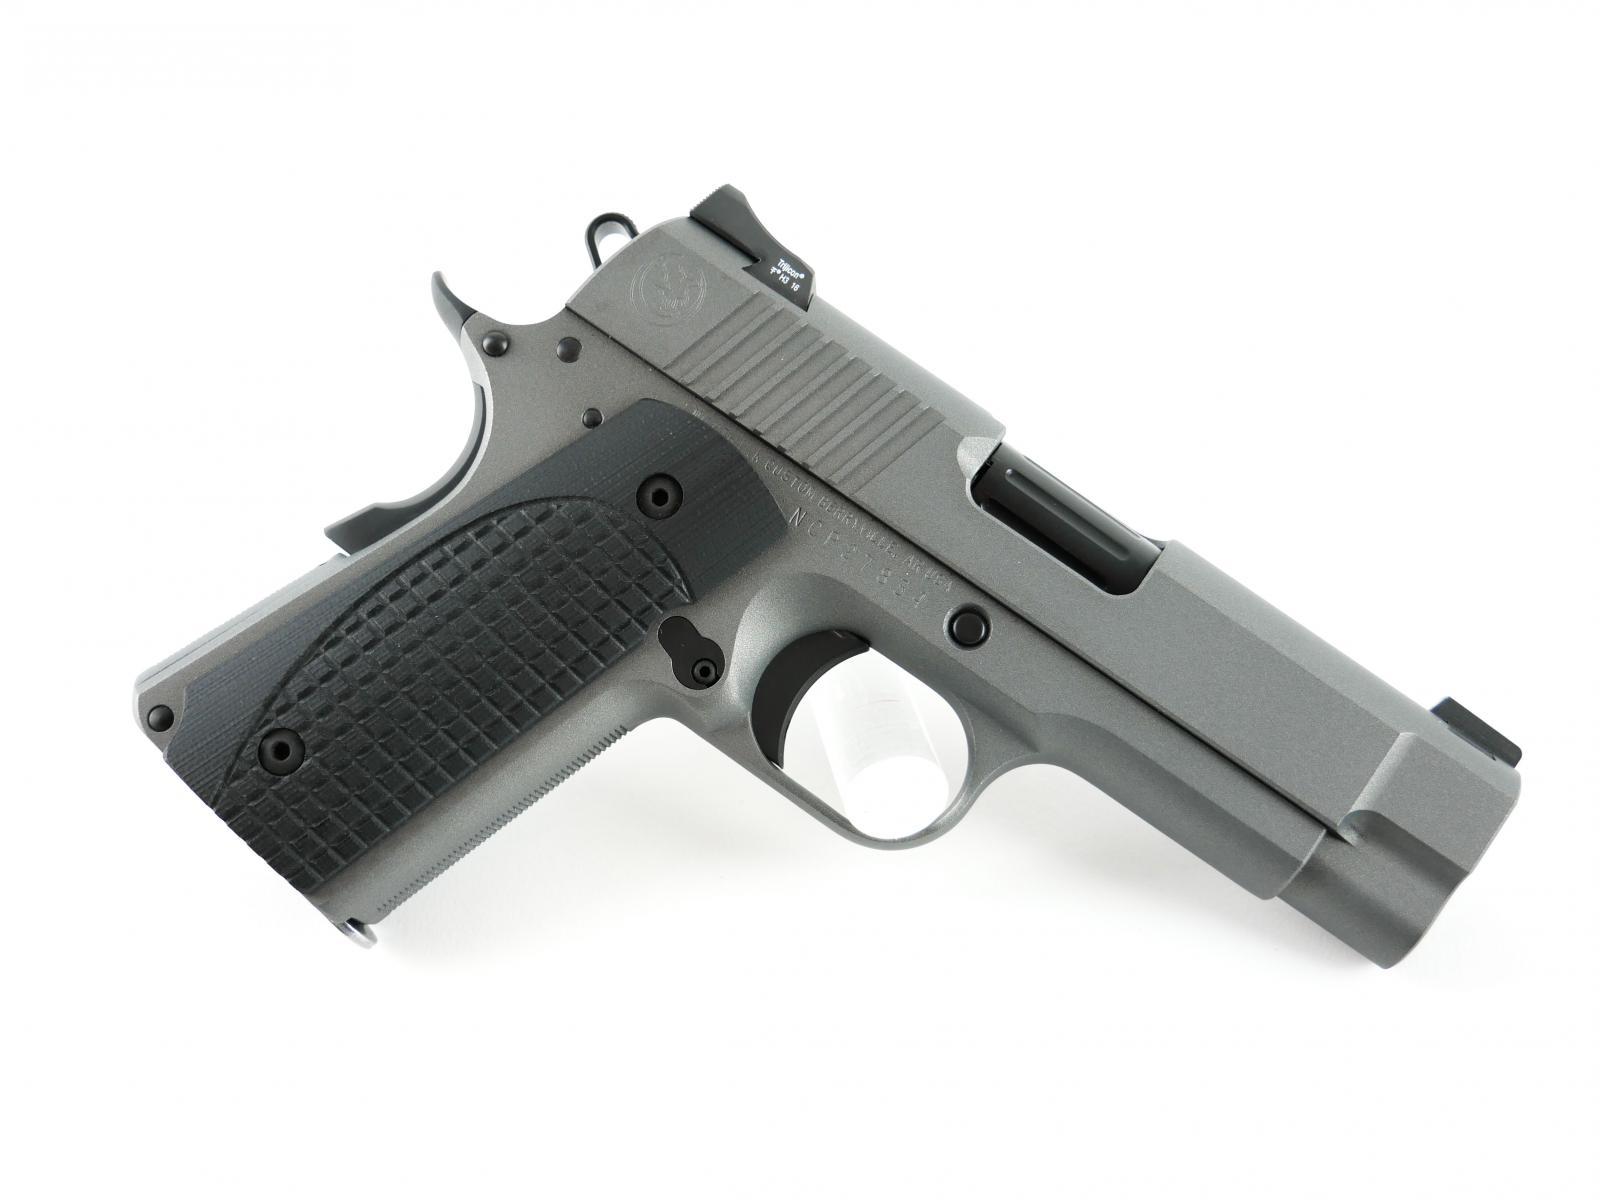 Carry Plus 1911 |9x19mm Tactical Gray Cerakote, Black Out Upgrade, Black Small Parts, Aluminum Frame/ MSH, Fluted and Crowned  Bull Barrel, Everlast Recoil System, Curved Slide Stop, Ball Endmill Cuts, Carry Cuts, Heine Straight Eight Rear, Tritium Front